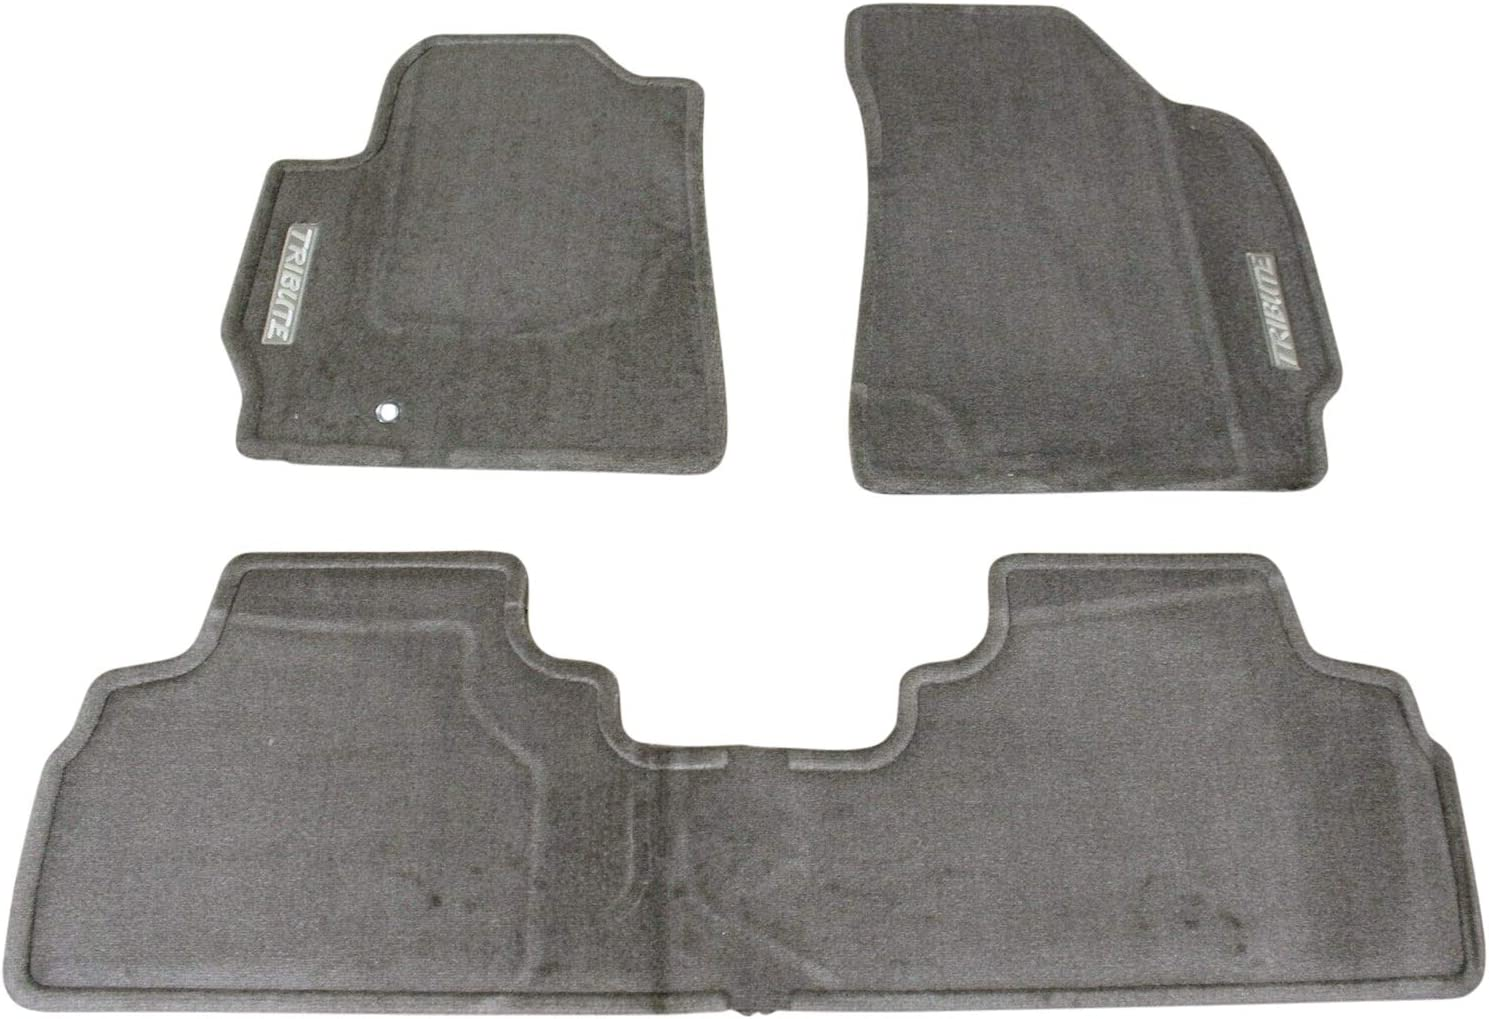 High Quality Car Floor Mats Set In Black//Blue To Fit Mazda 3 2009-2013